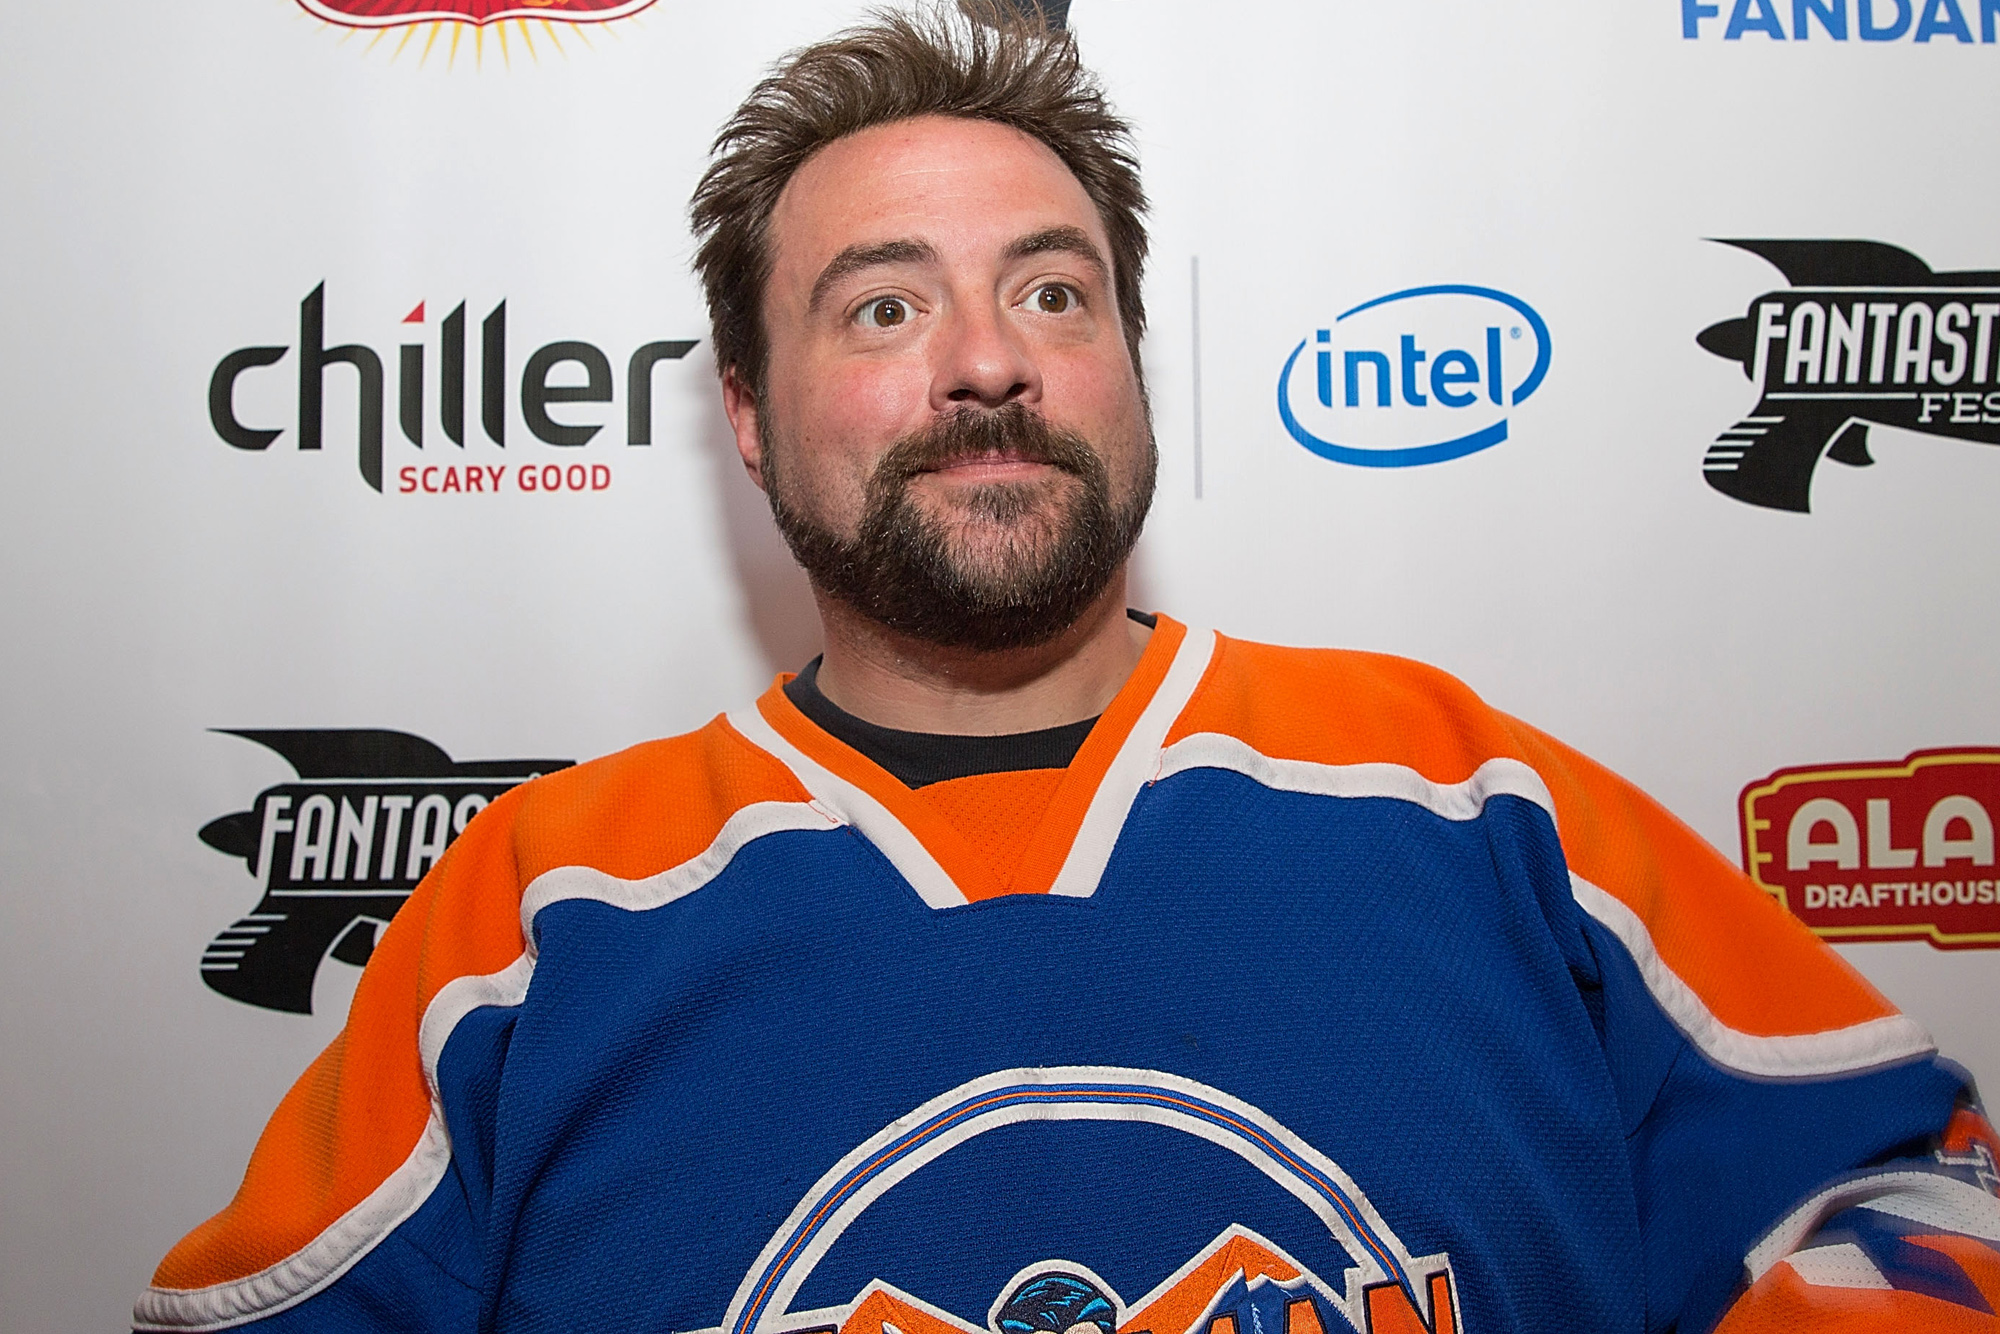 2000x1334 - Kevin Smith Wallpapers 23